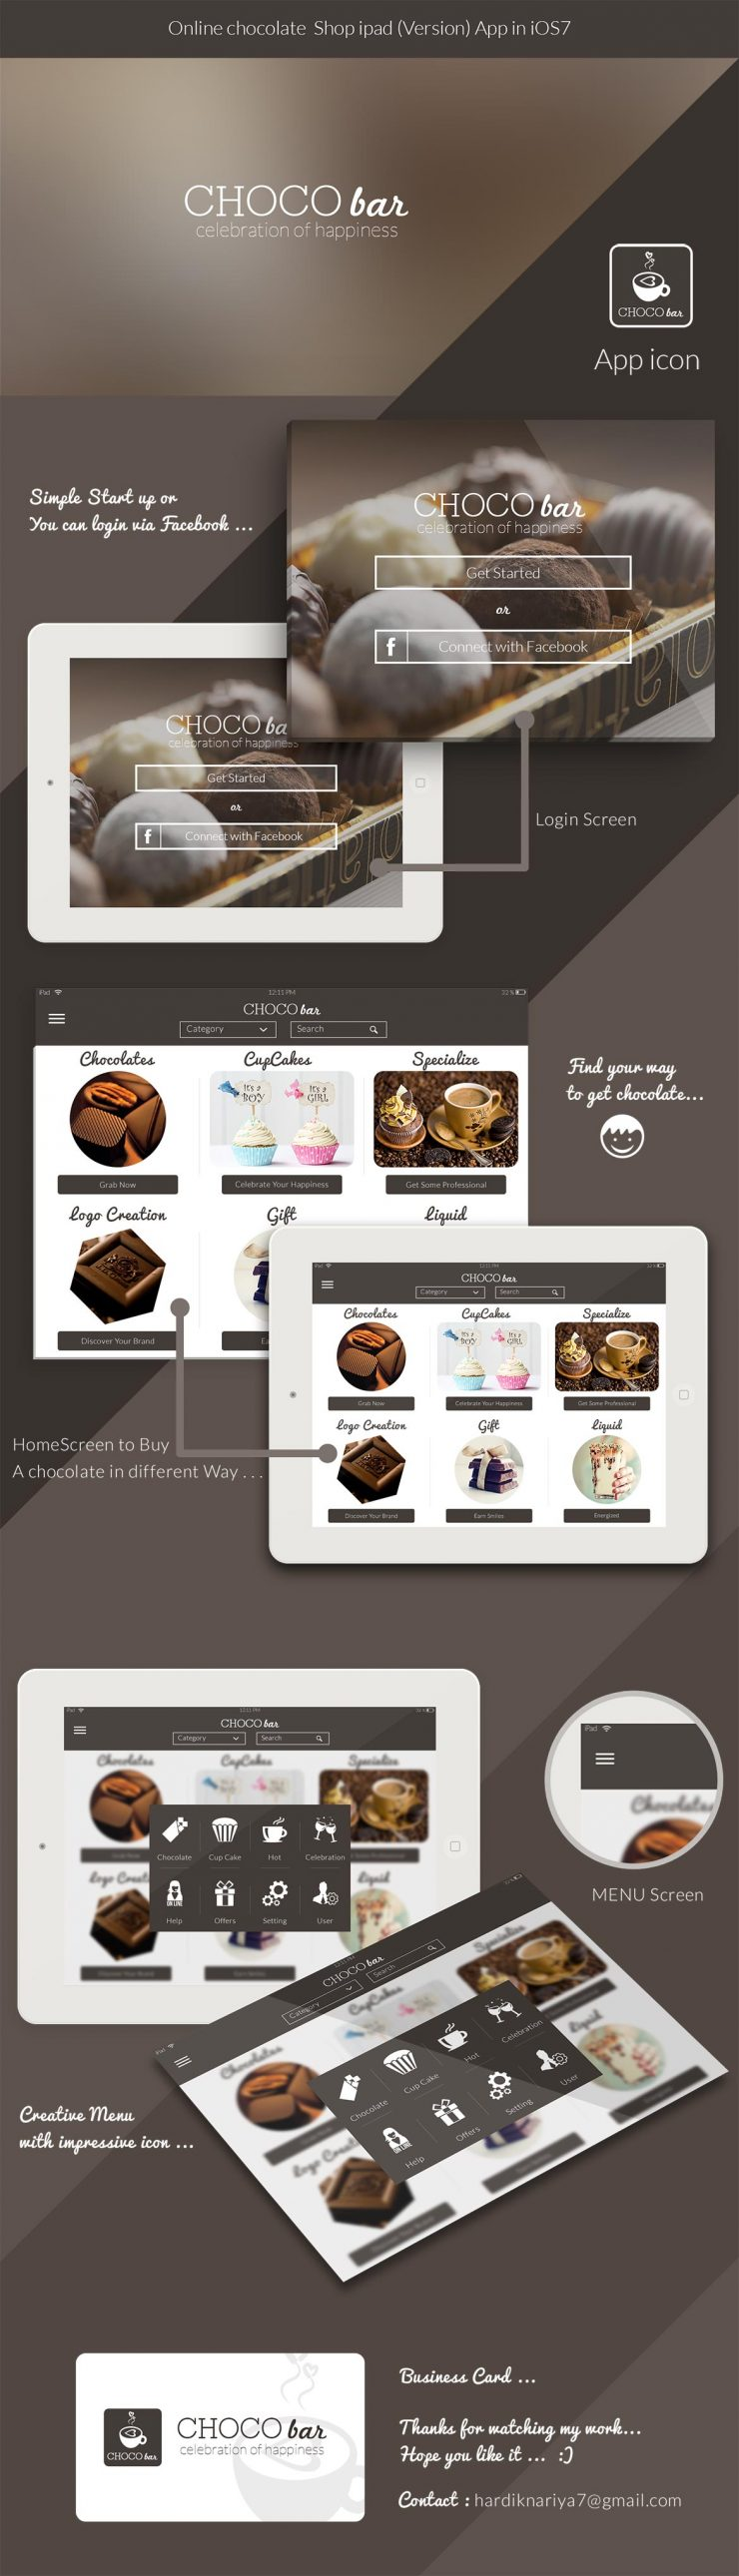 Bakery Store iPad App UI Kit Free PSD Web Resources, Web Elements, Web Design Elements, Web, UX, User Interface, ui set, ui kit, UI elements, UI, Tablet, Shopping, restaurant app, Restaurant, Resources, Psd Templates, PSD Sources, psd resources, PSD images, psd free download, psd free, PSD file, psd download, PSD, Photoshop, Mobile App, Layered PSDs, Layered PSD, Iphone, iPad, iOS, Interface, GUI Set, GUI kit, GUI, Graphics, Graphical User Interface, Freebies, Free Resources, Free PSD, free download, Free, Elements, download psd, download free psd, Download, Design Resources, Design Elements, cup cakes, chocolate, chocobar, choco, Business Card, bakery, Application, Apple, app psd, App, Adobe Photoshop,